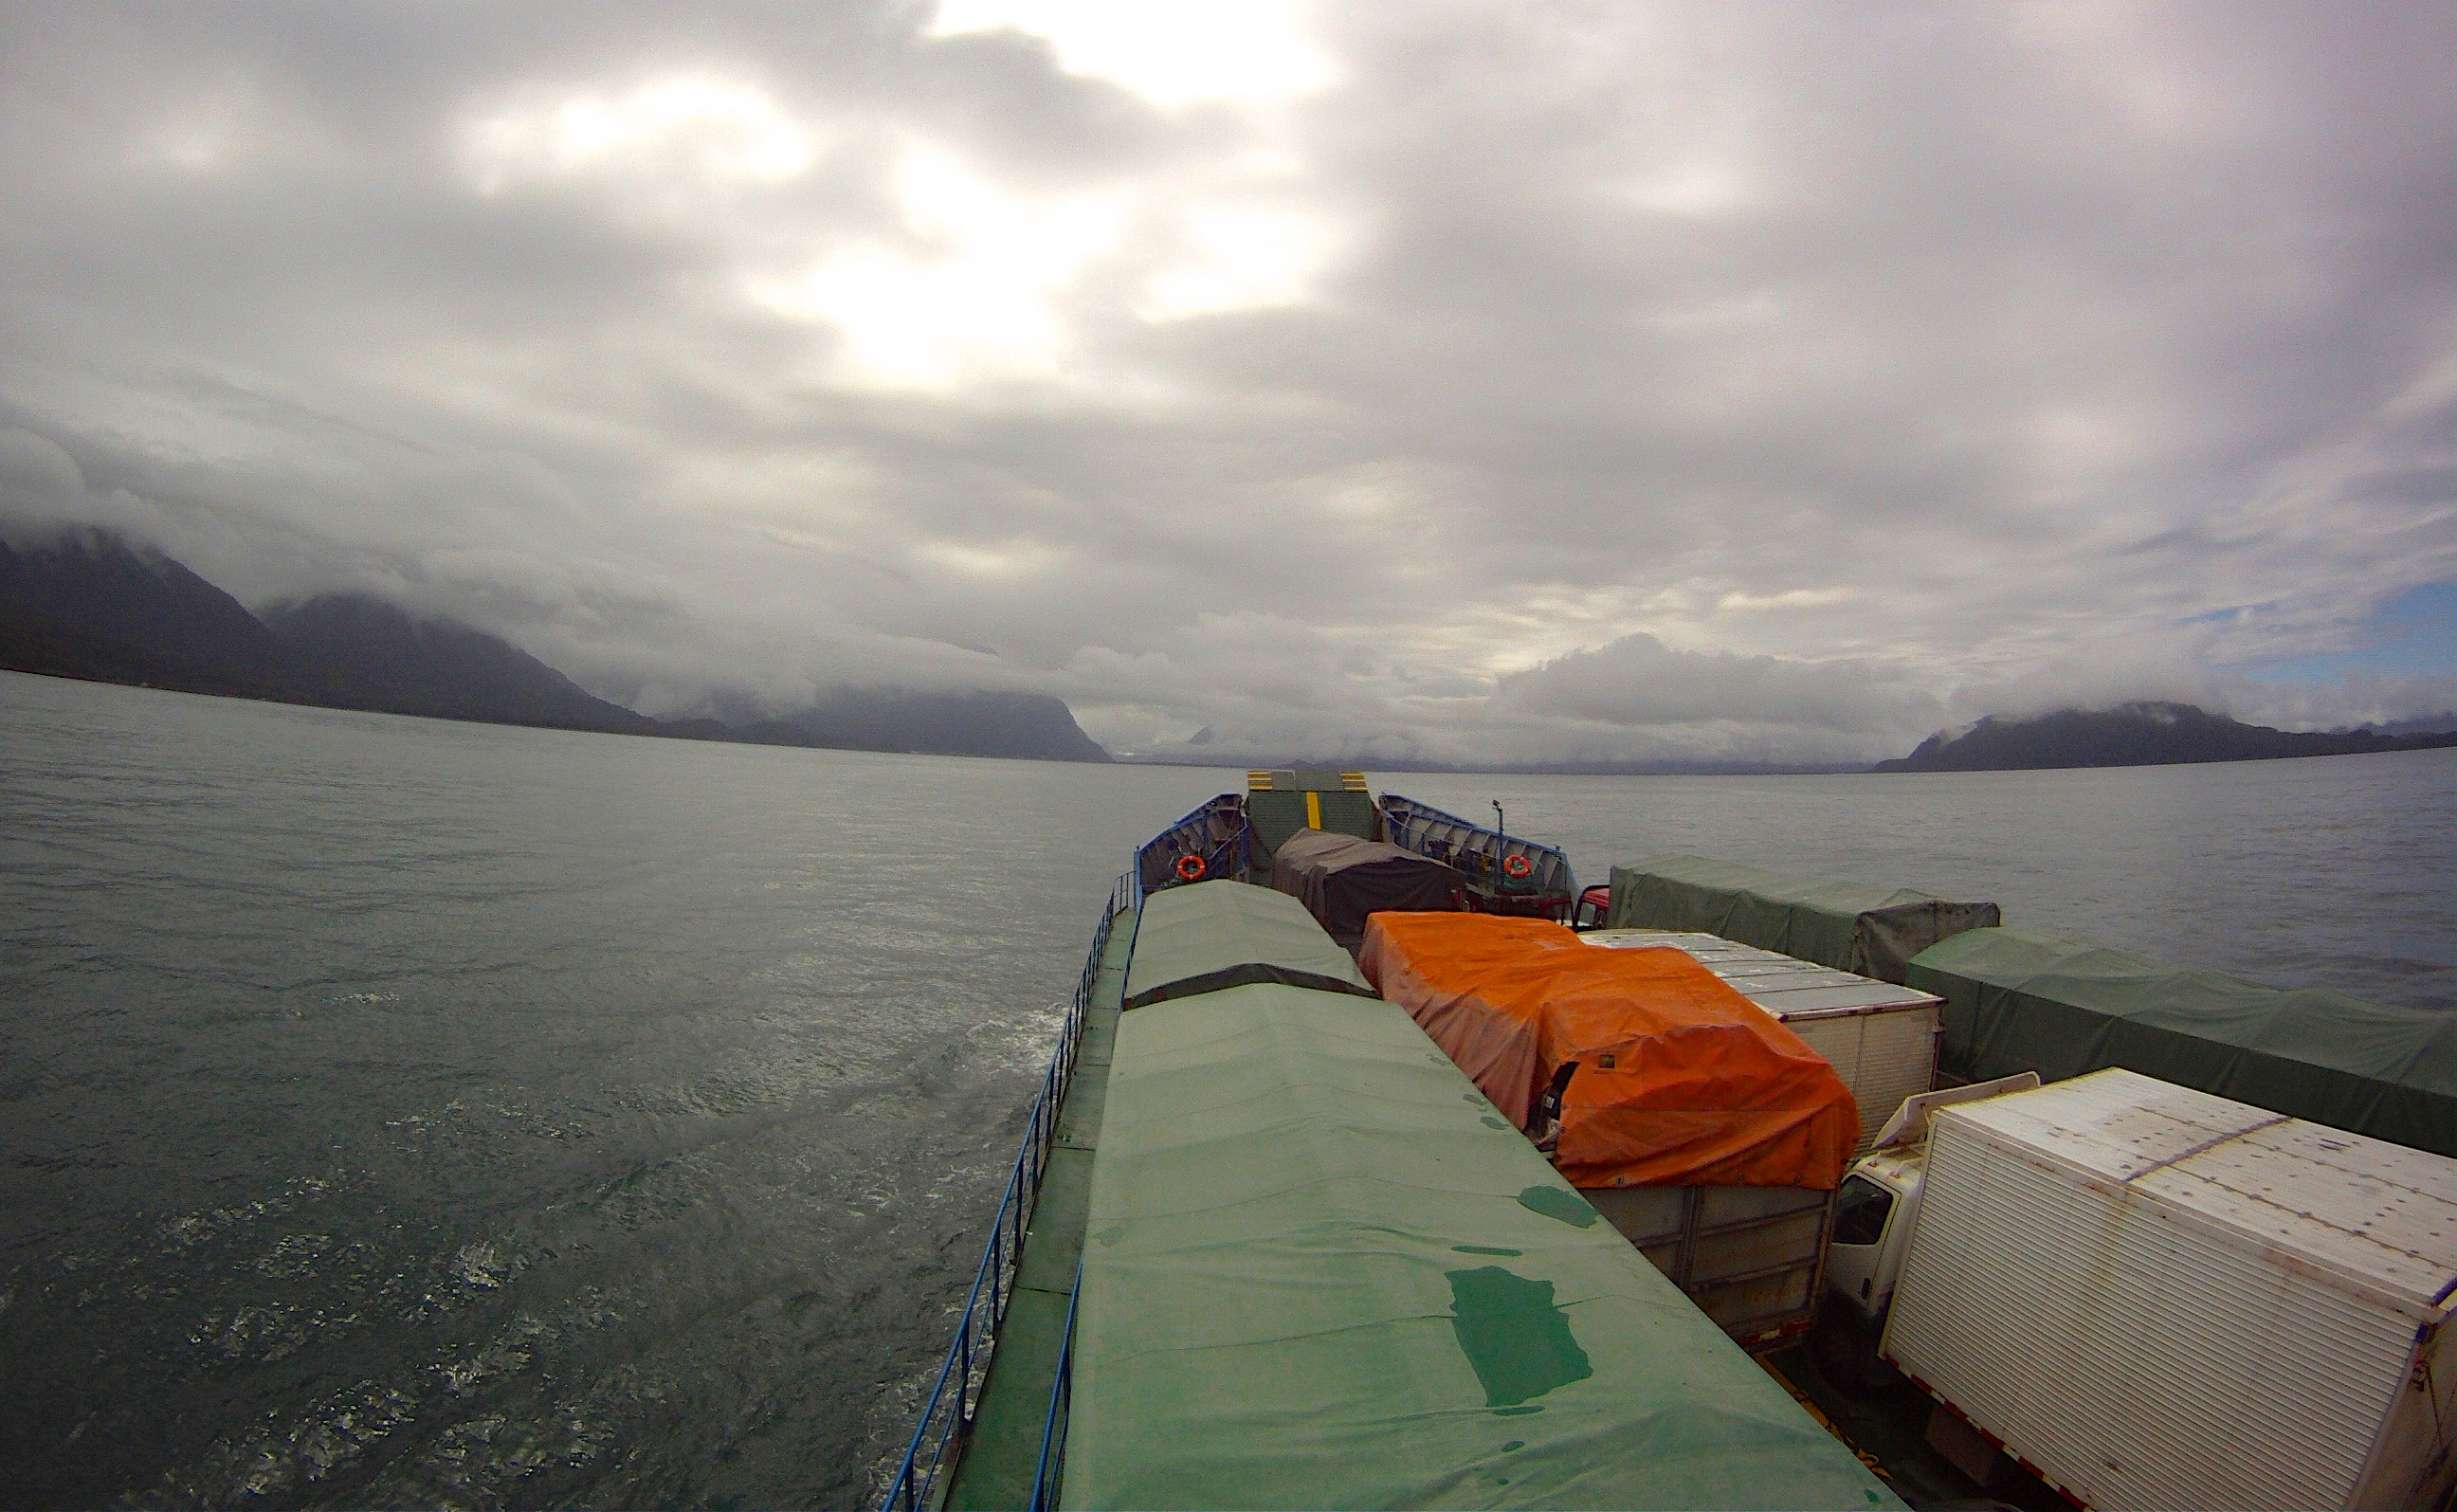 On the ferry approaching Chaiten, Patagonia